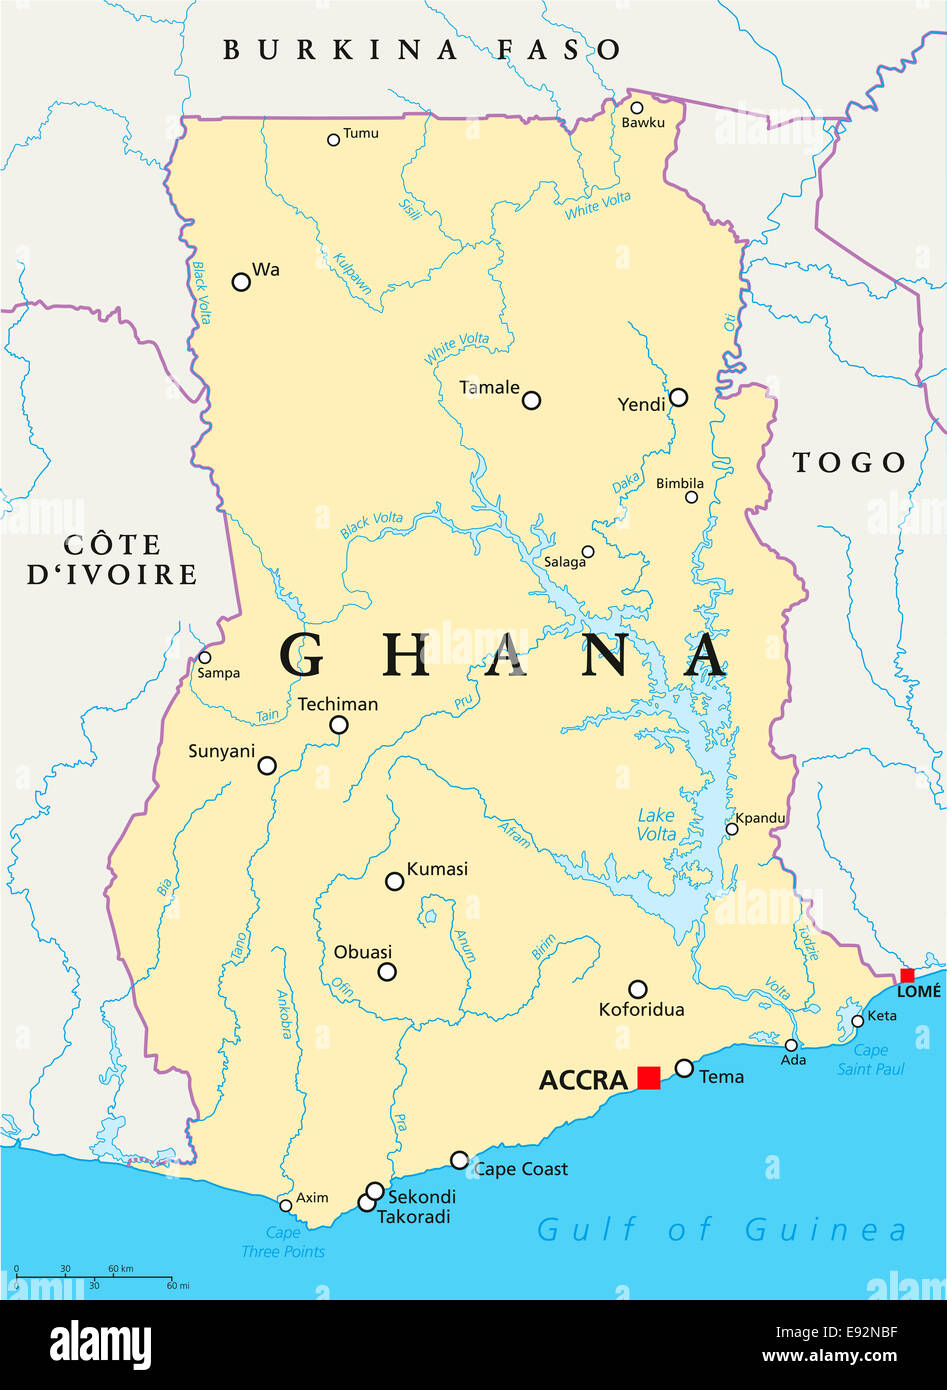 Ghana Political Map with capital Accra, national borders ...